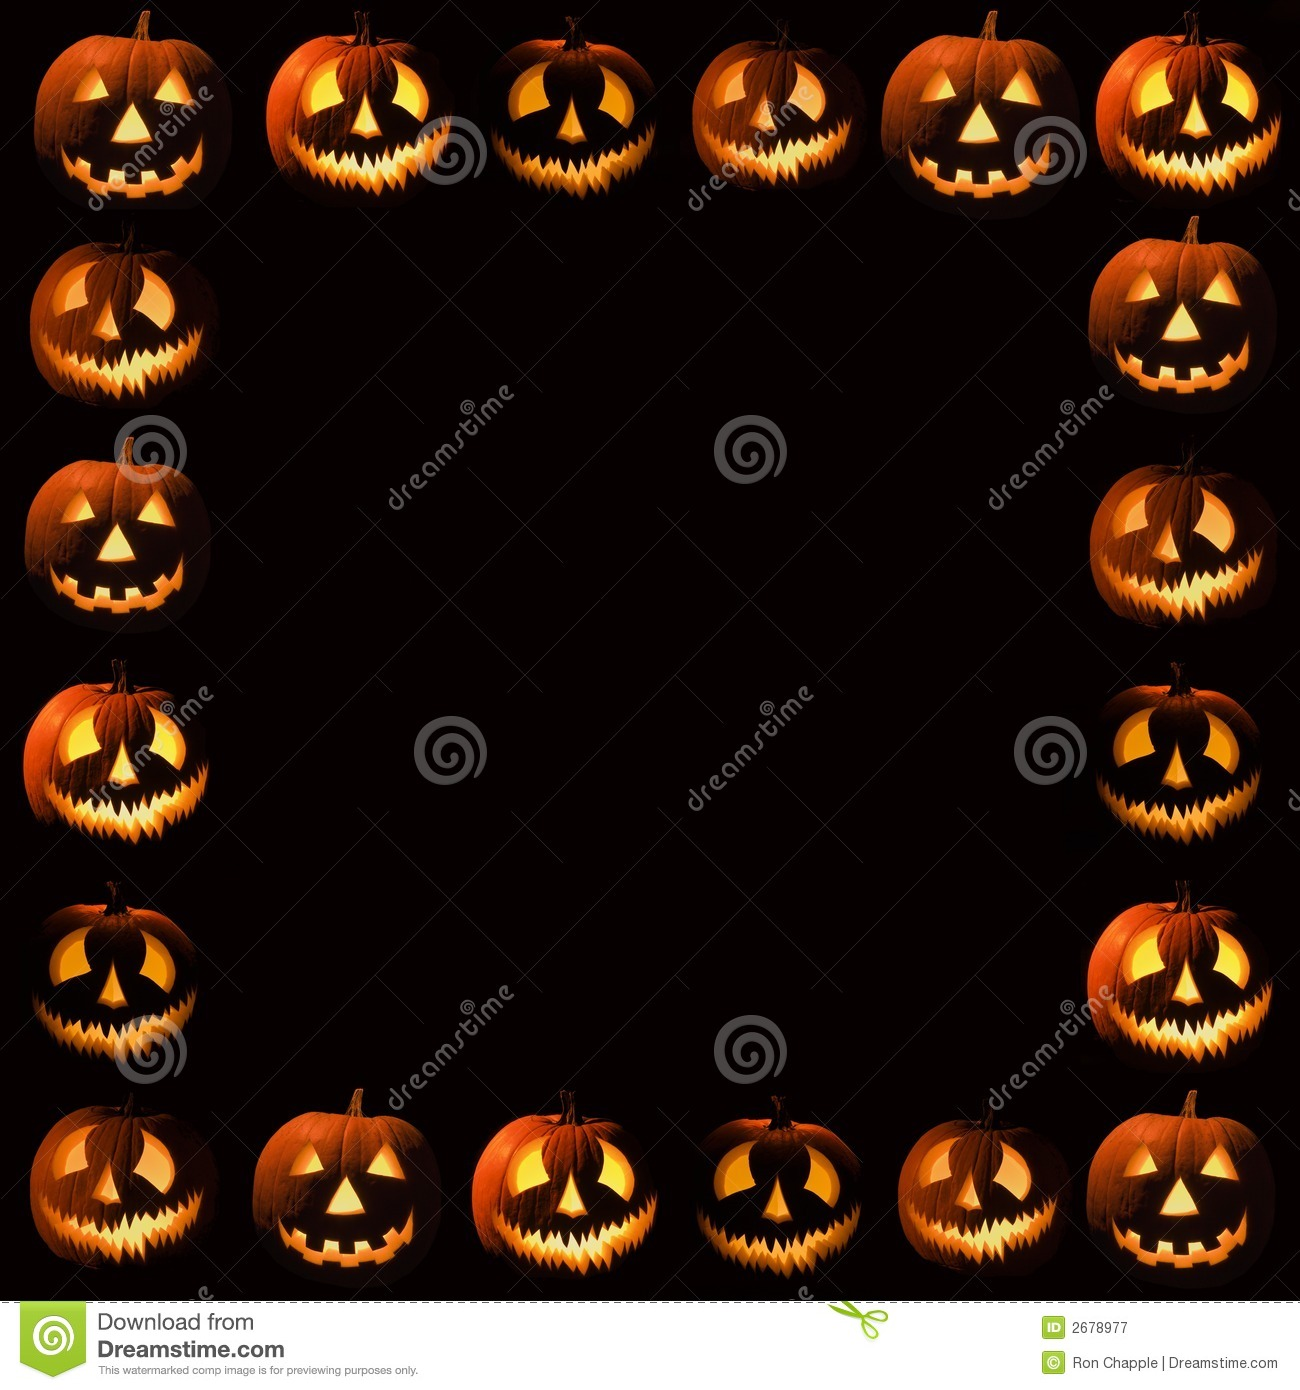 Charlie Brown Fall Wallpaper Halloween Frame Stock Image Image Of Fall Nobody Gourd